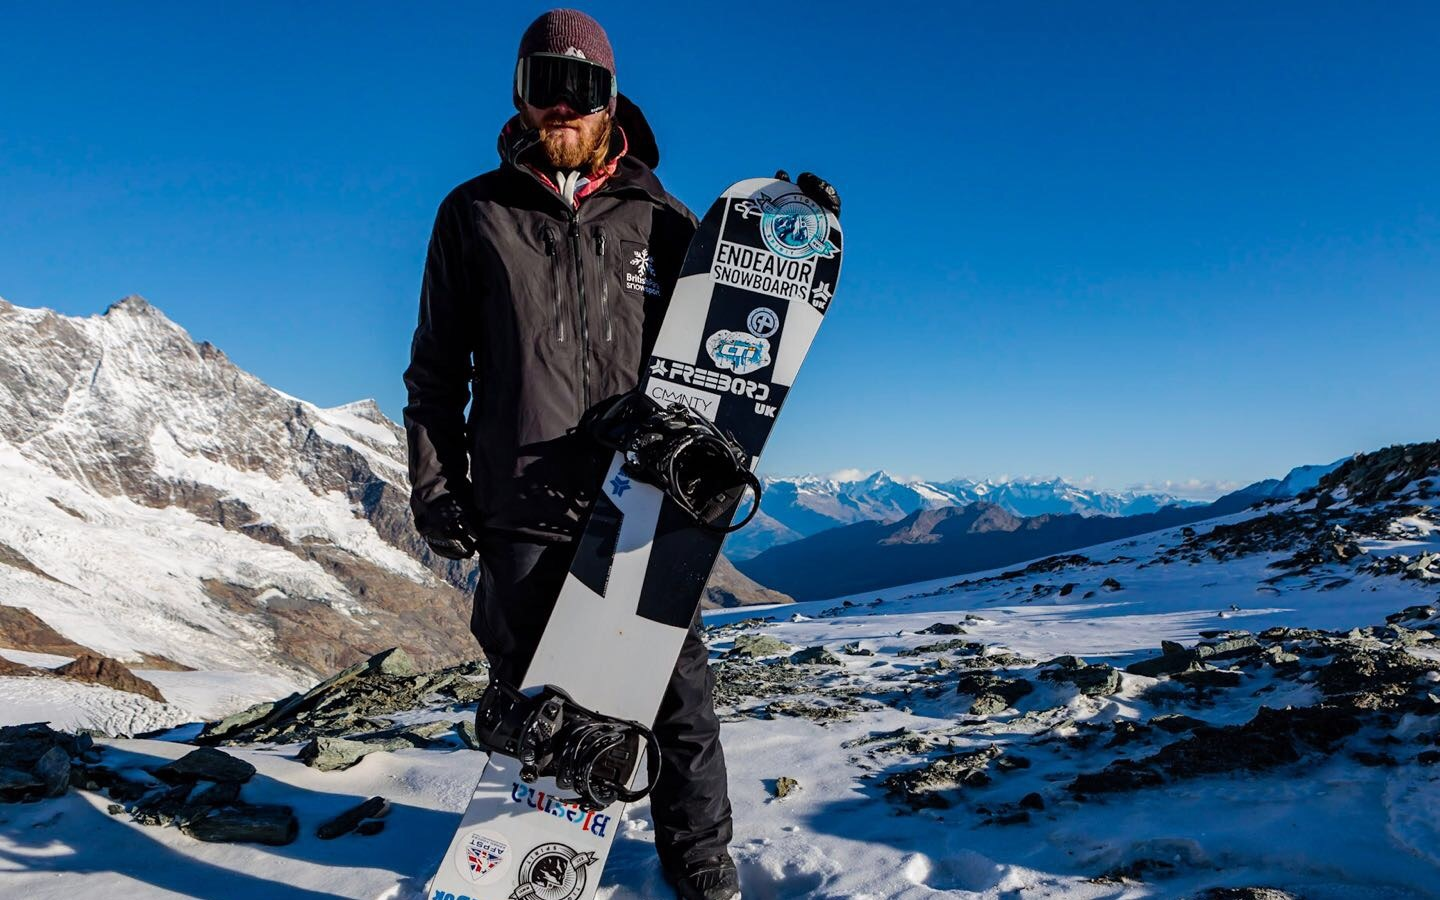 Owen Pick, an adaptive snowboarder and Paralympic contender